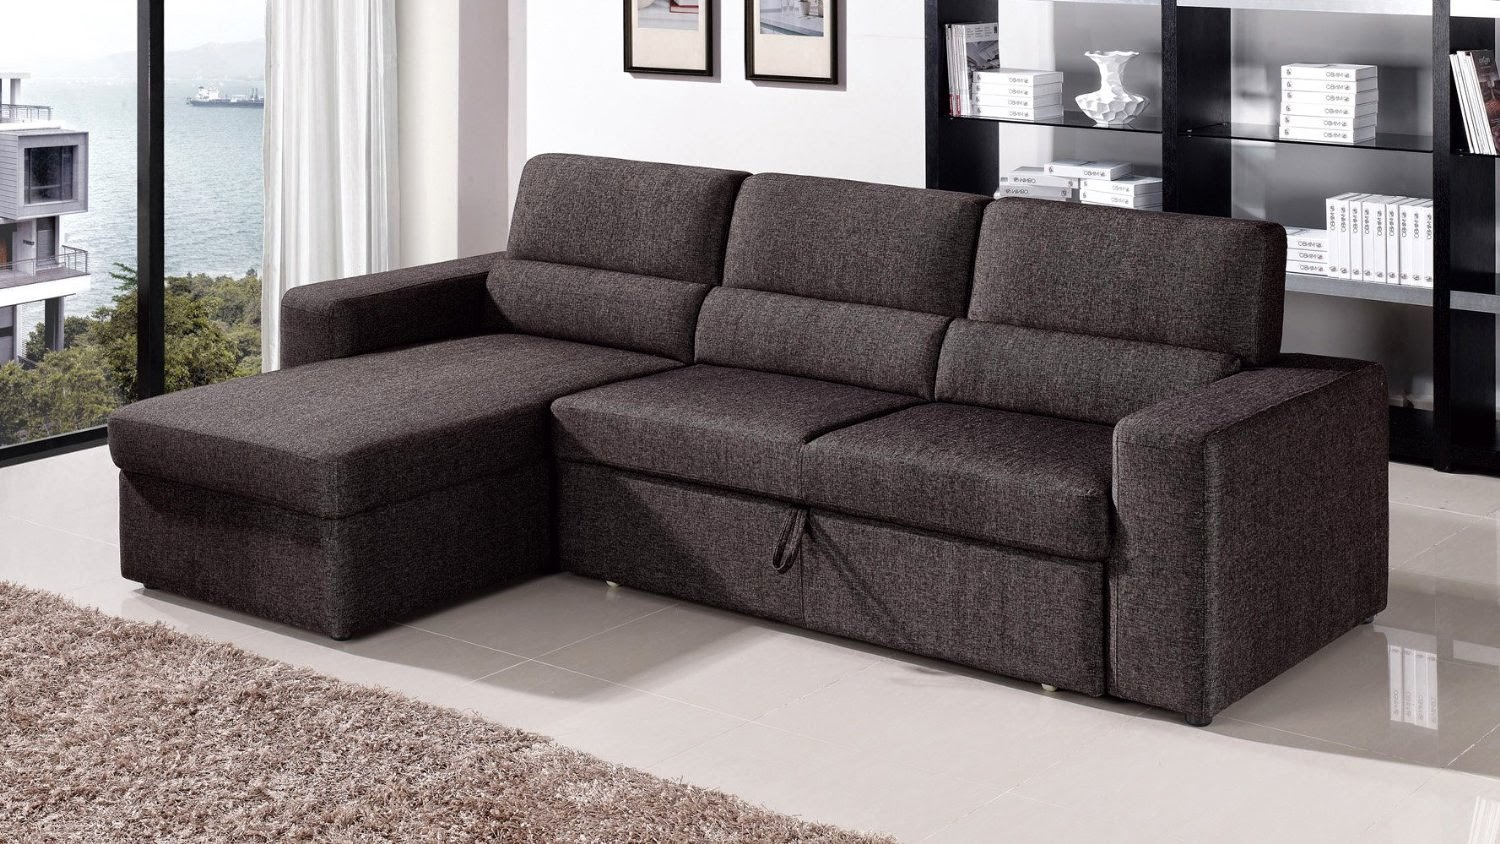 Pull out couch sectional couch with pull out bed for Sectional sofa with pull out bed and recliner